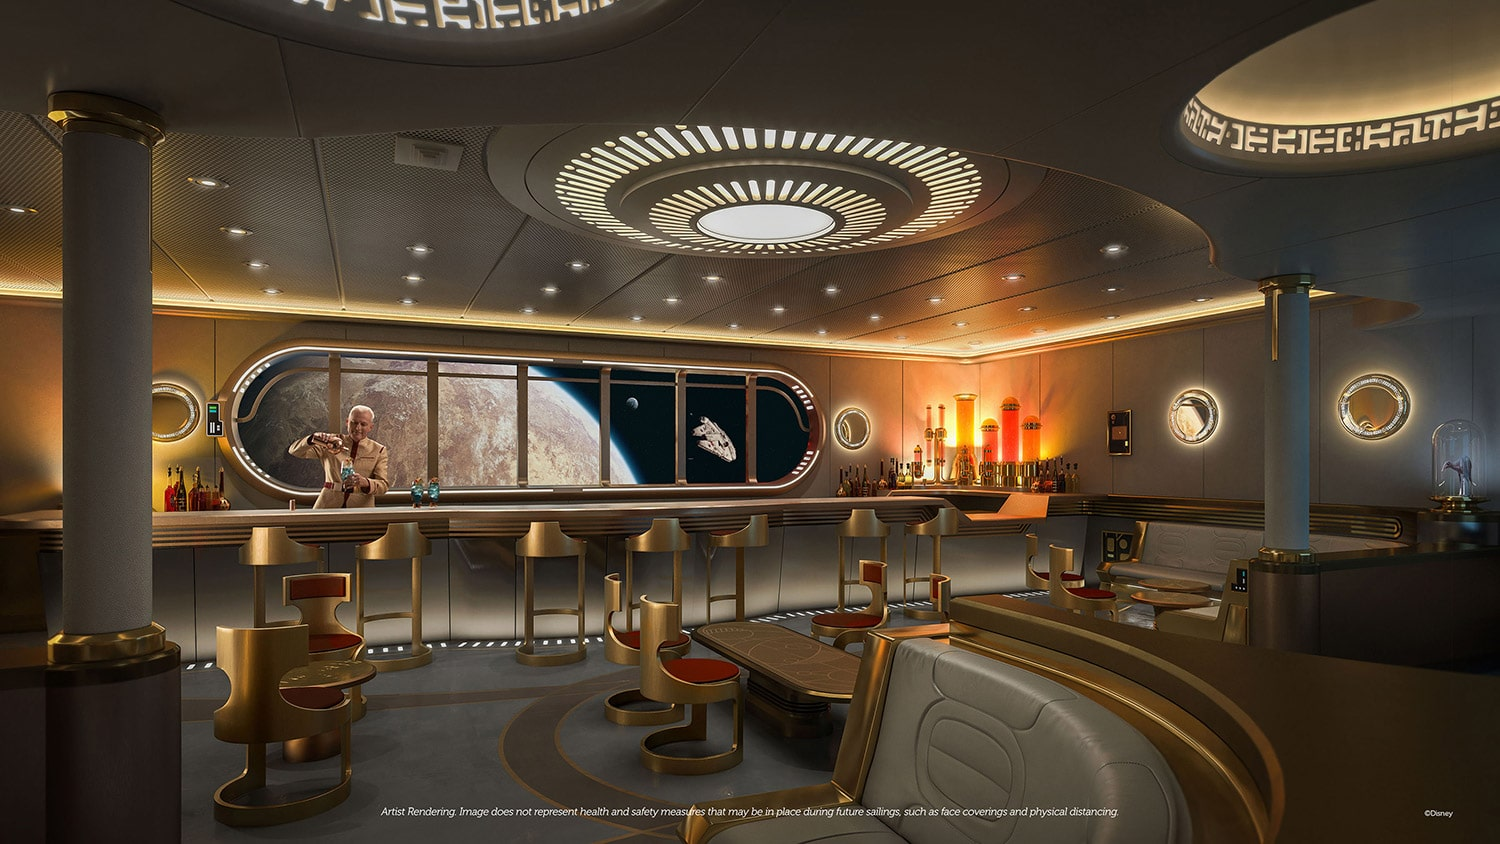 Star Wars Hyperspace Lounge on the Disney Wish